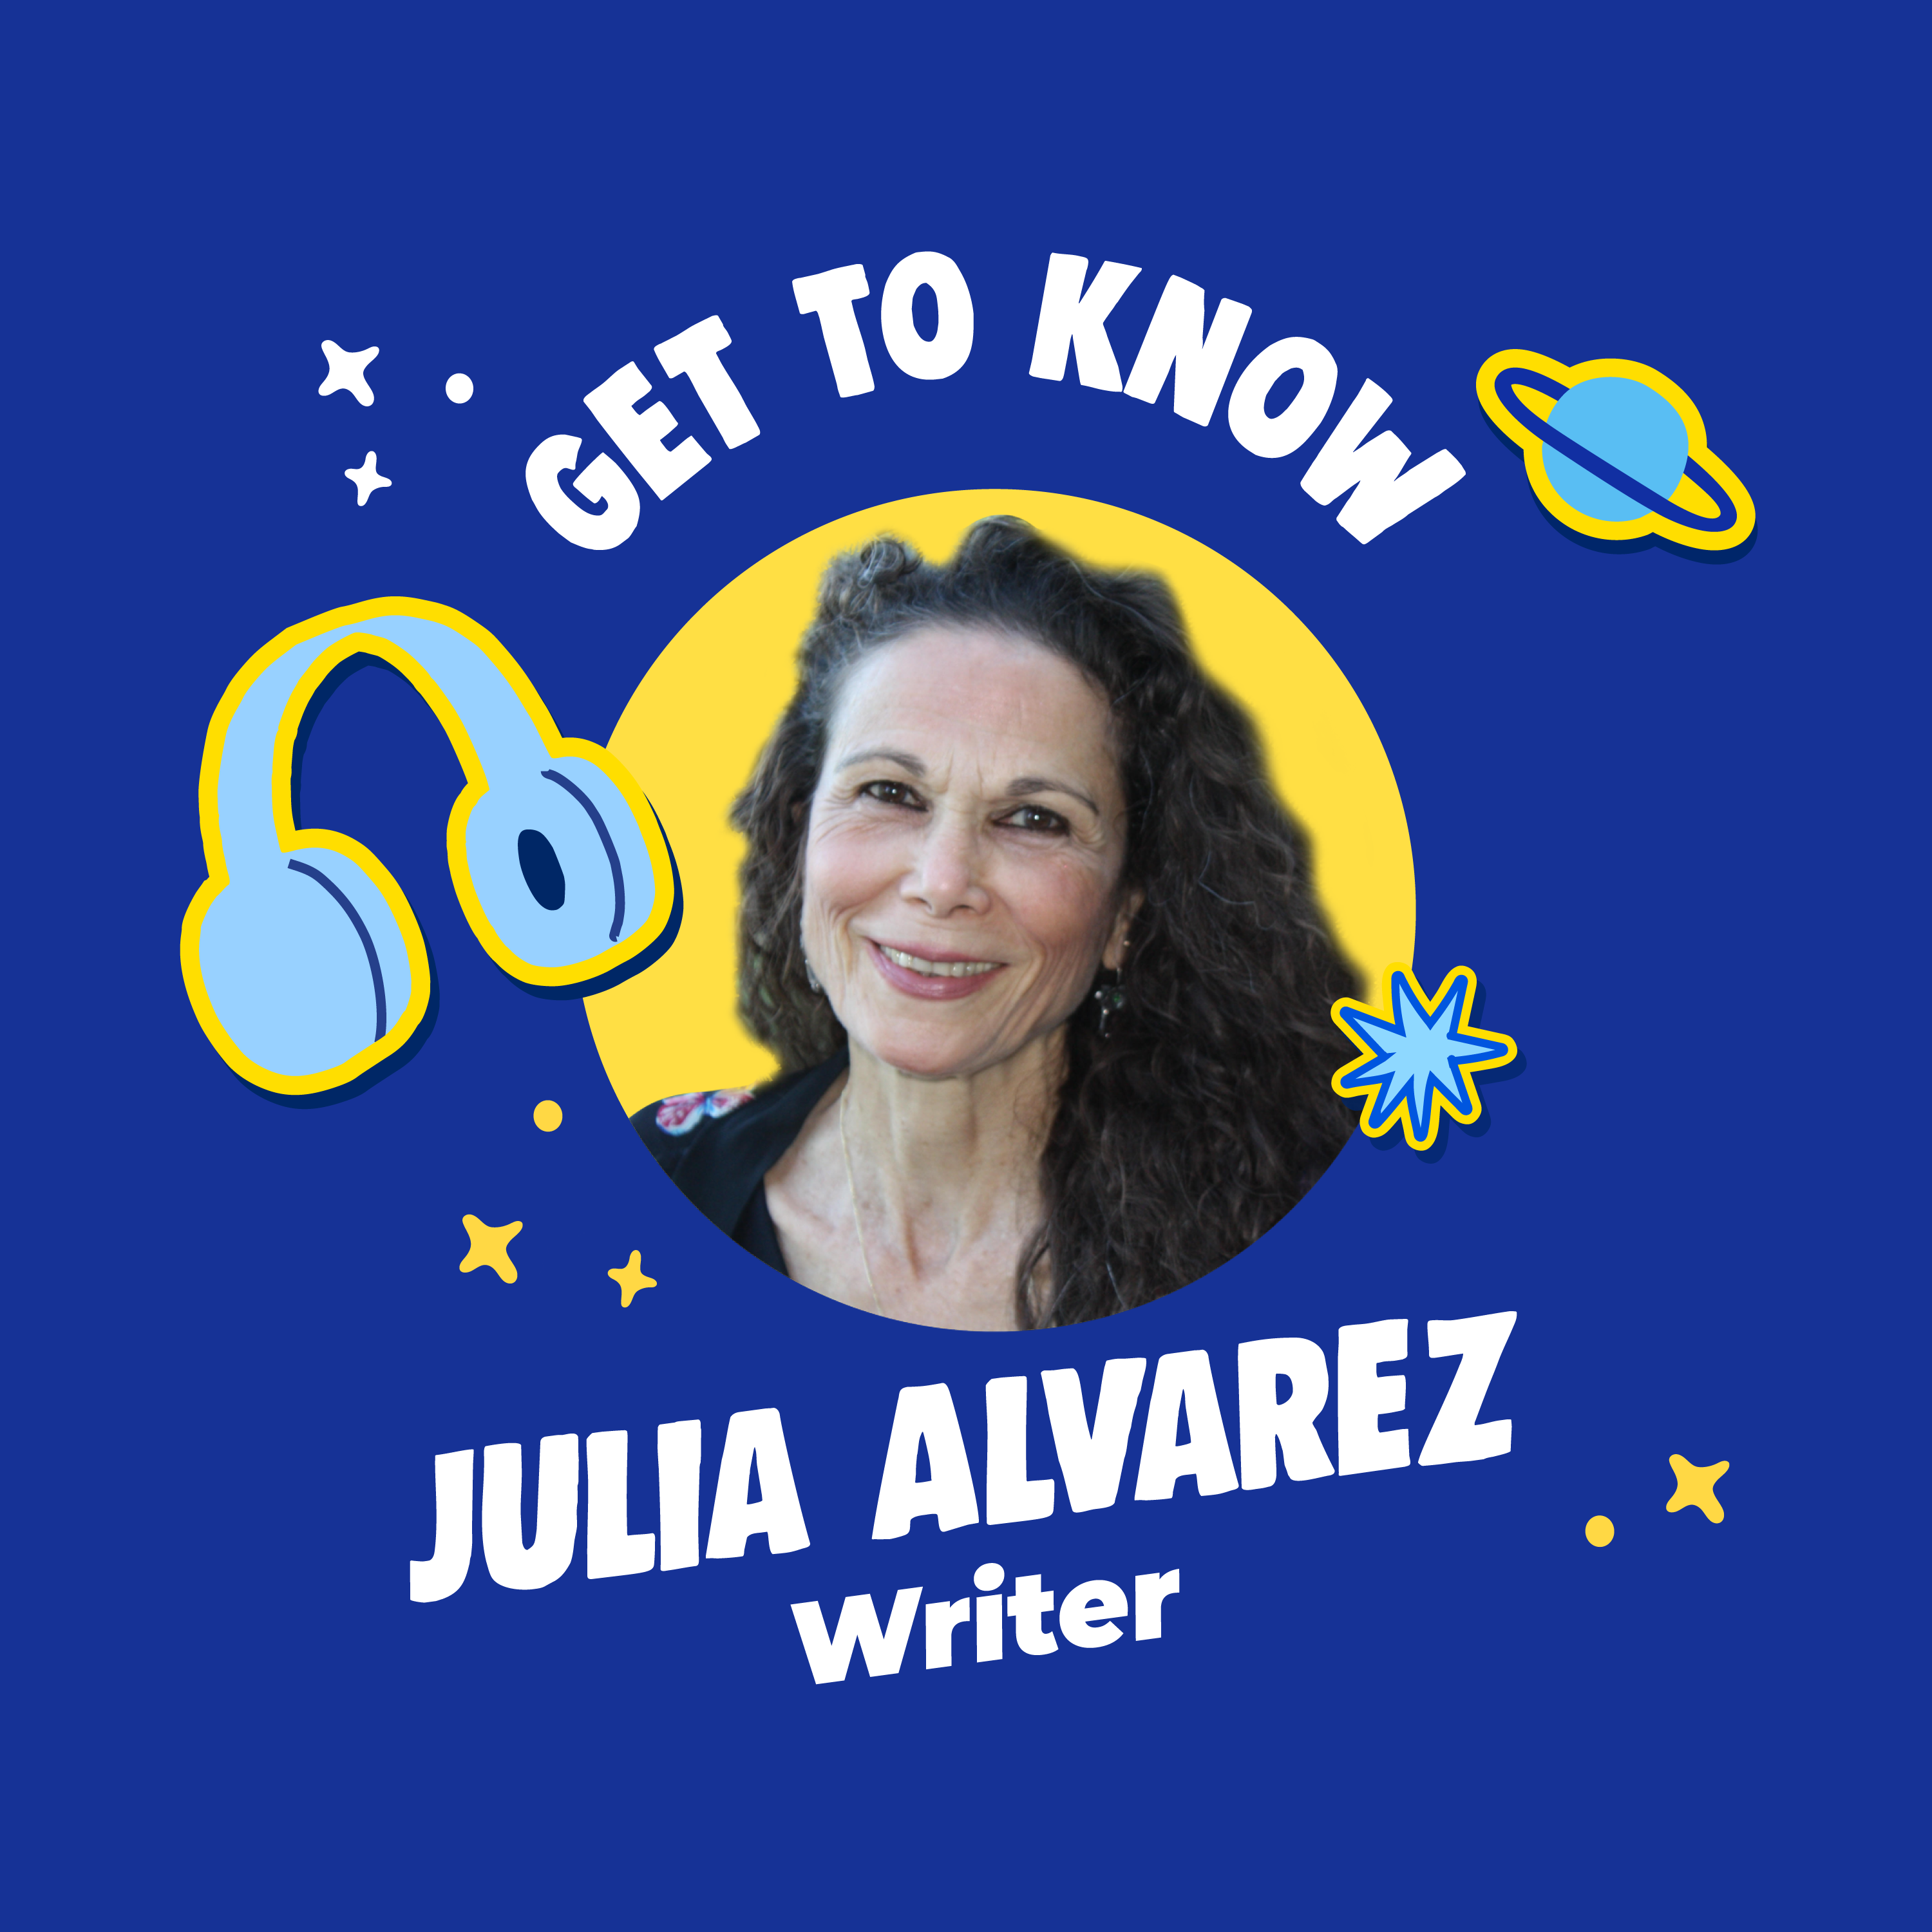 Get To Know The Mirabal Sisters, with writer Julia Alvarez!